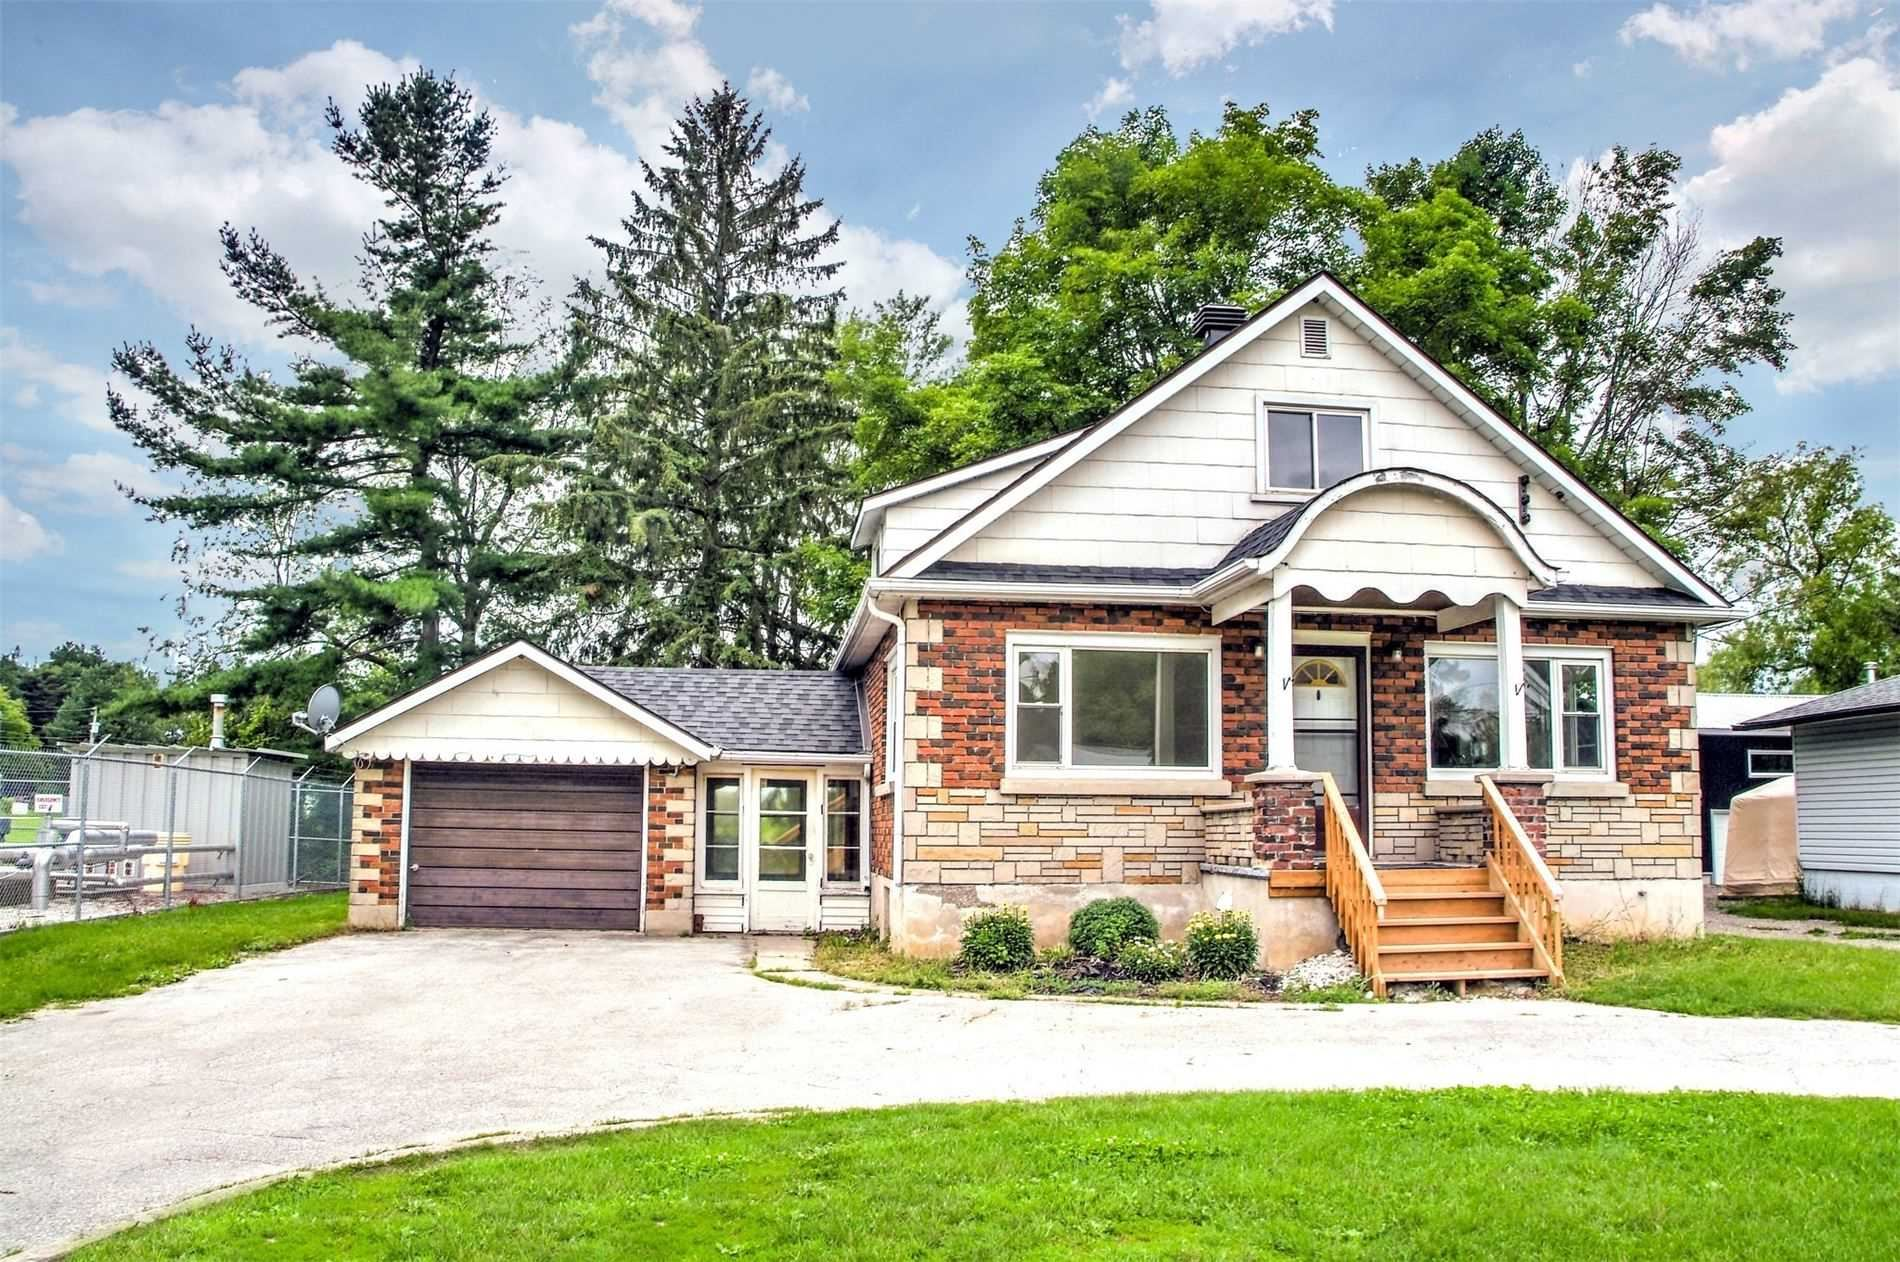 7613 Highway 26, Clearview, ON L0M 1S0 - MLS#: S5365290